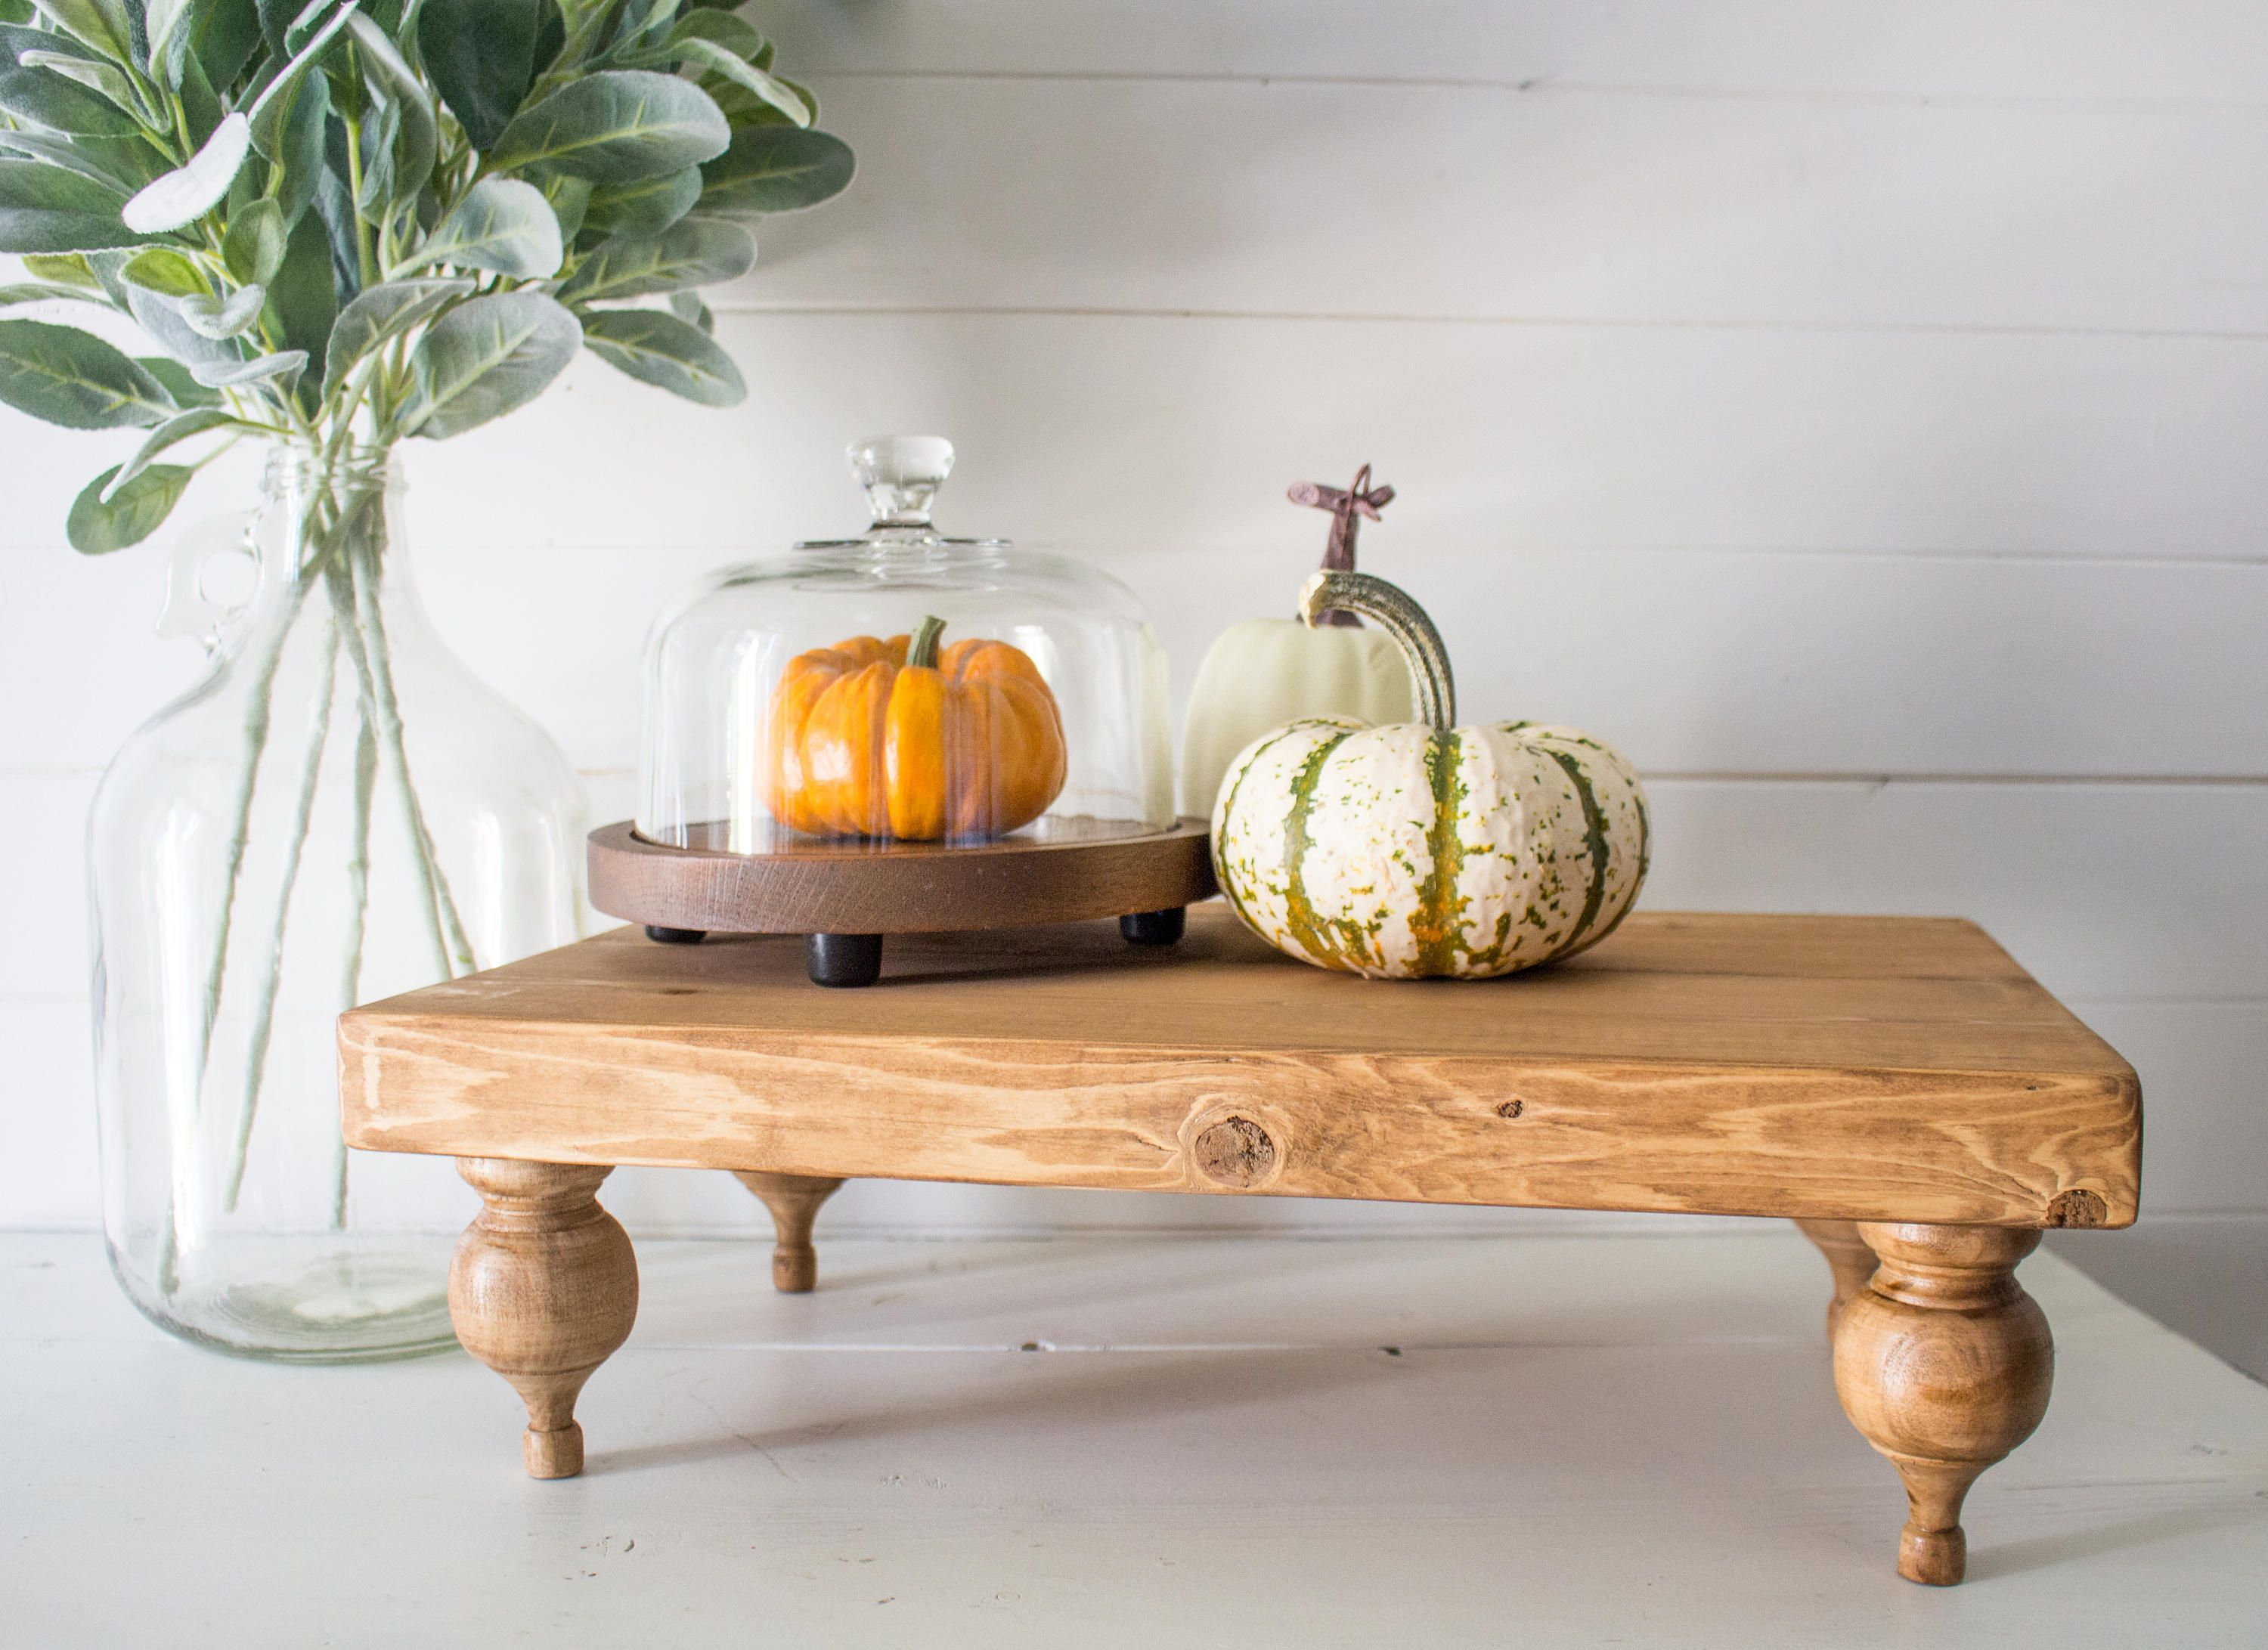 Farmhouse Riser Pedestaltray Rustic Wood Plank Farmhouse Style Riser Tray Centerpiece Decor Display With Turned Finial Legs Decor Wood Planks Wood Planks Diy